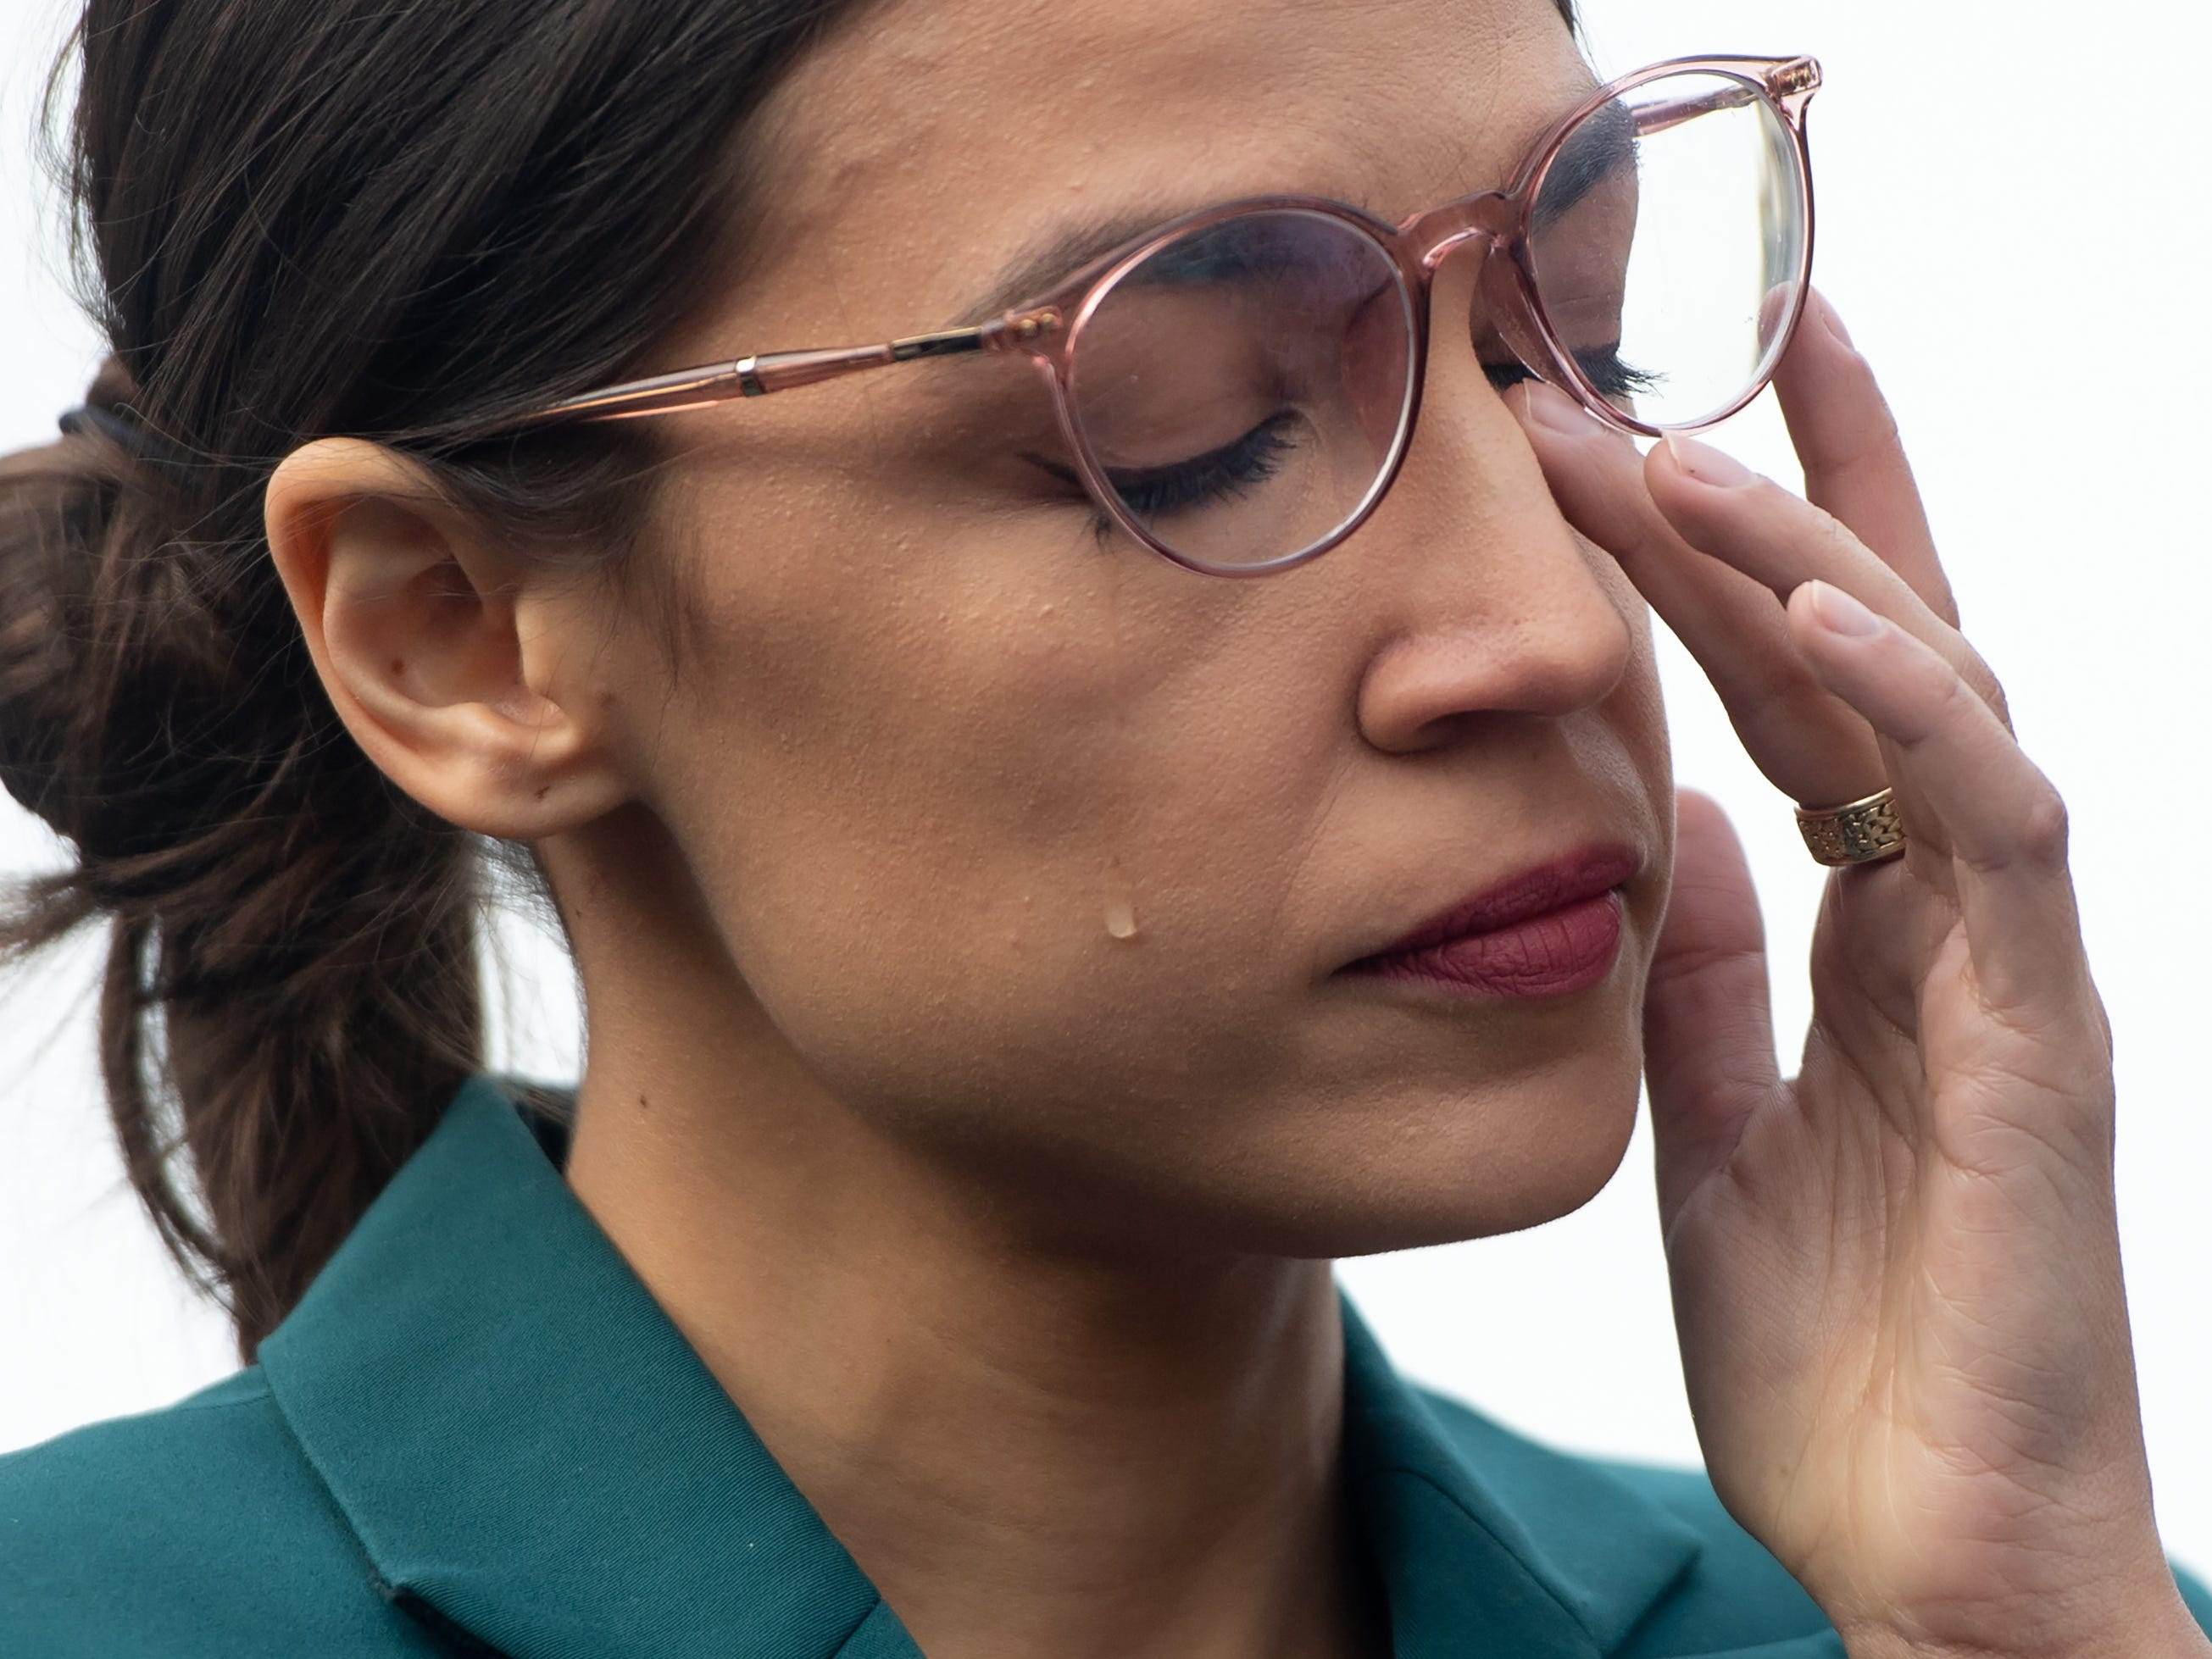 US Representative Alexandria Ocasio-Cortez, Democrat of New York, sheds a tear during a press conference calling on Congress to cut funding for US Immigration and Customs Enforcement (ICE) and to defund border detention facilities, outside the US Capitol in Washington, DC, February 7, 2019. (Photo by SAUL LOEB / AFP)SAUL LOEB/AFP/Getty Images ORIG FILE ID: AFP_1D55JR